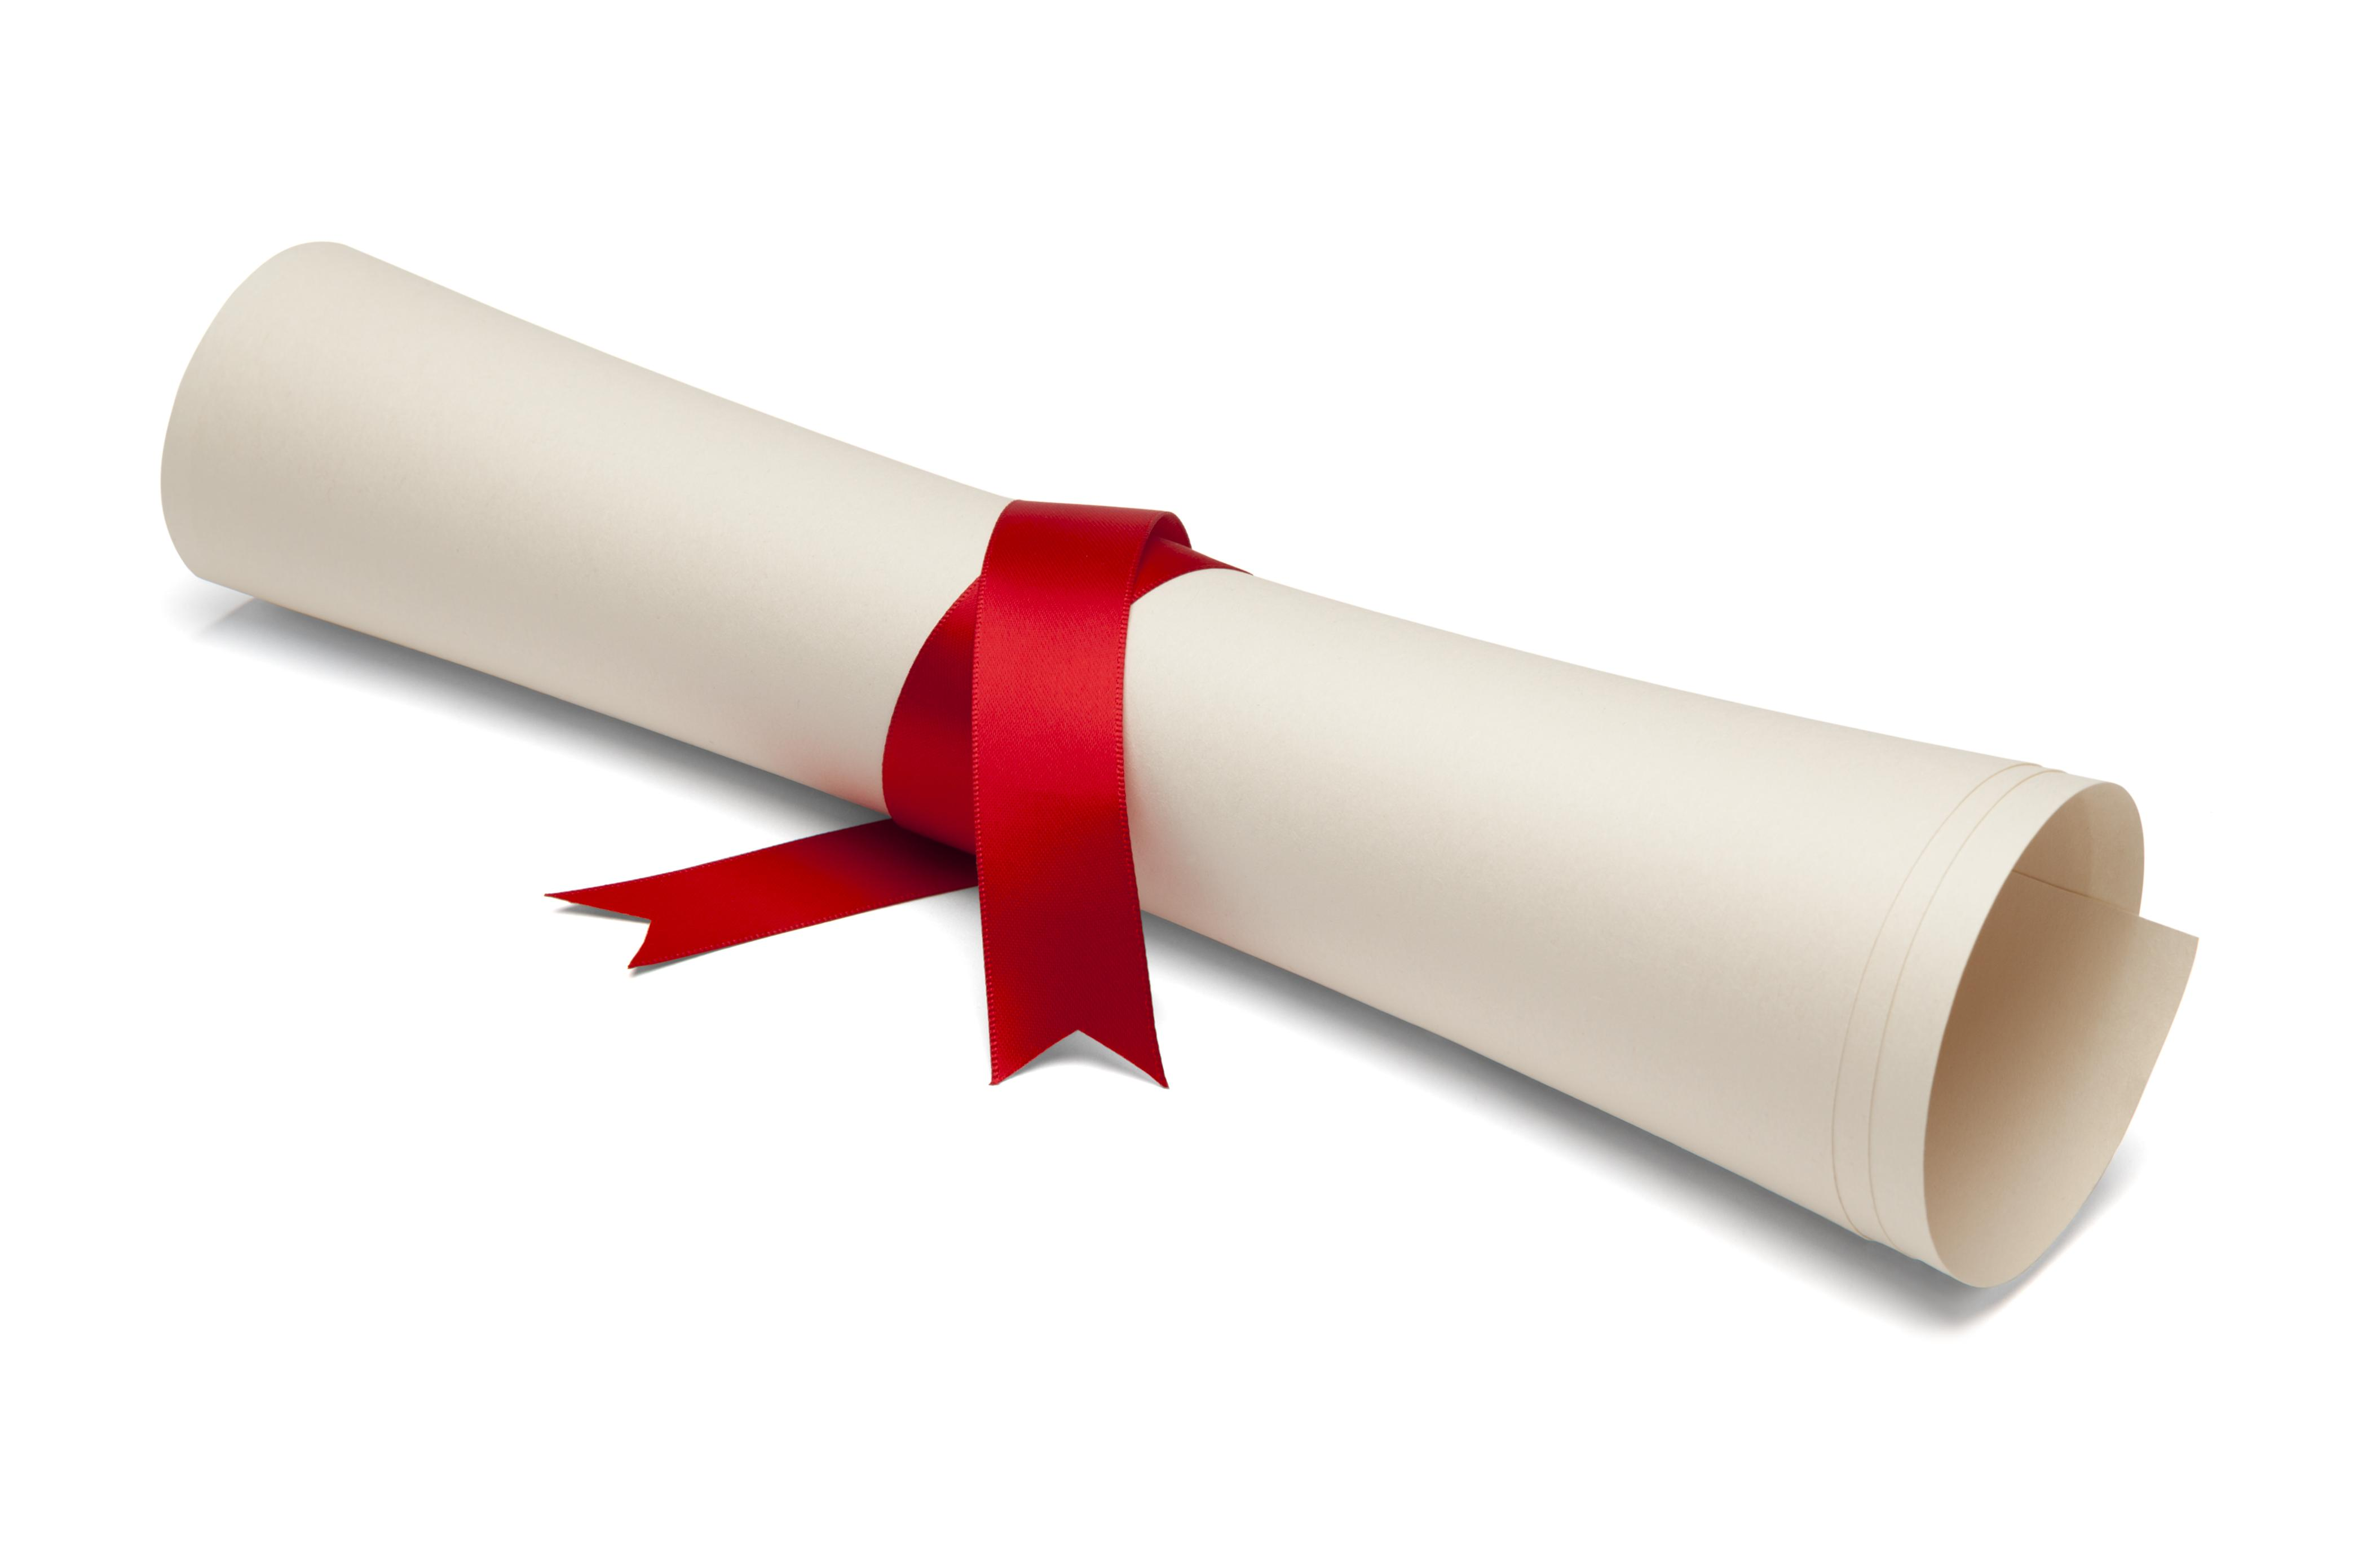 Diploma clipart rolled.  collection of graduation